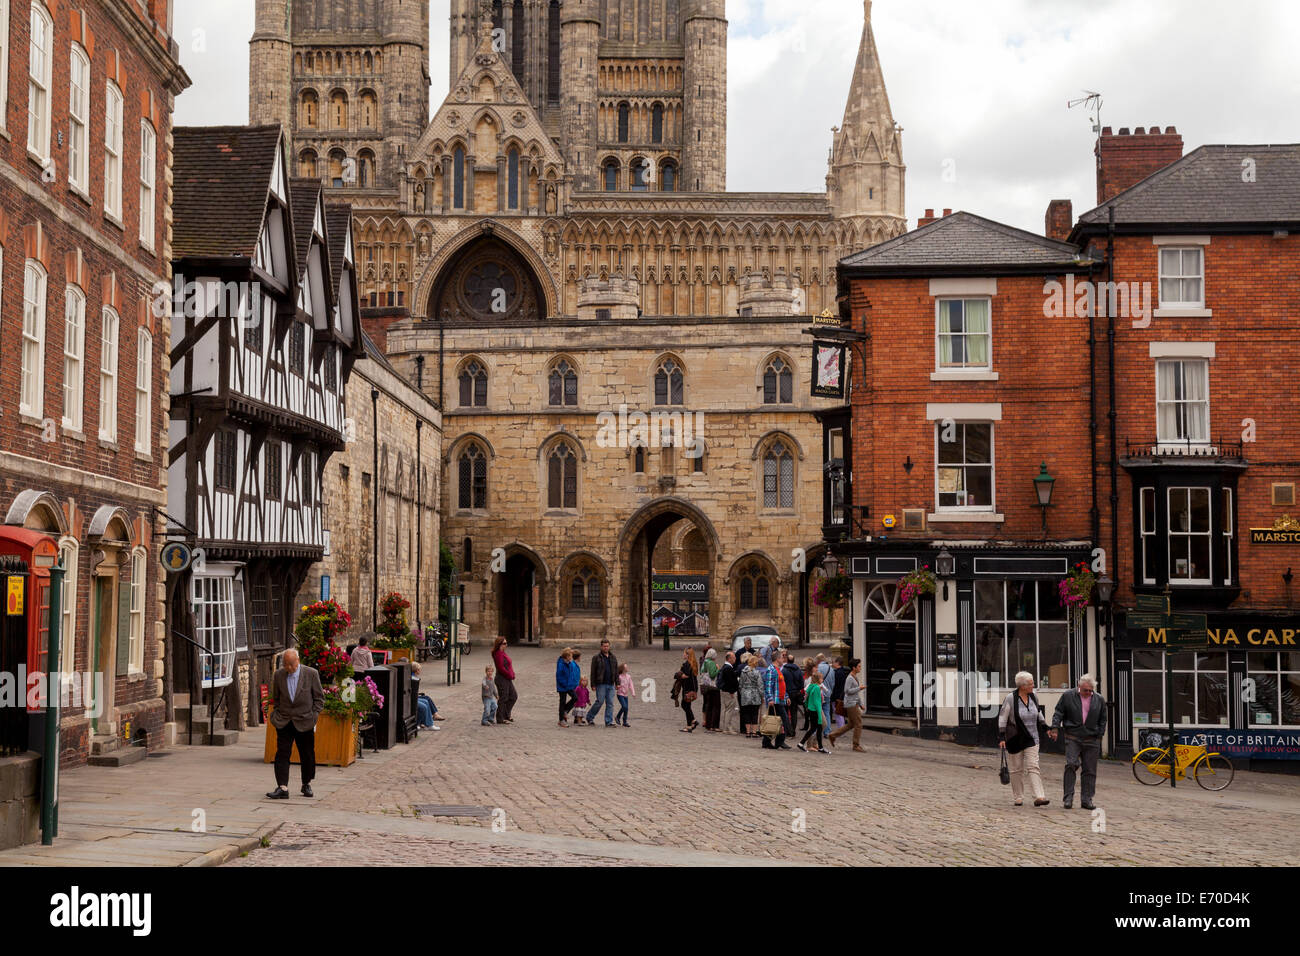 Lincoln Cathedral seen from Castle square, medieval Lincoln City Centre, Lincoln, UK. See also E779W6 - Stock Image